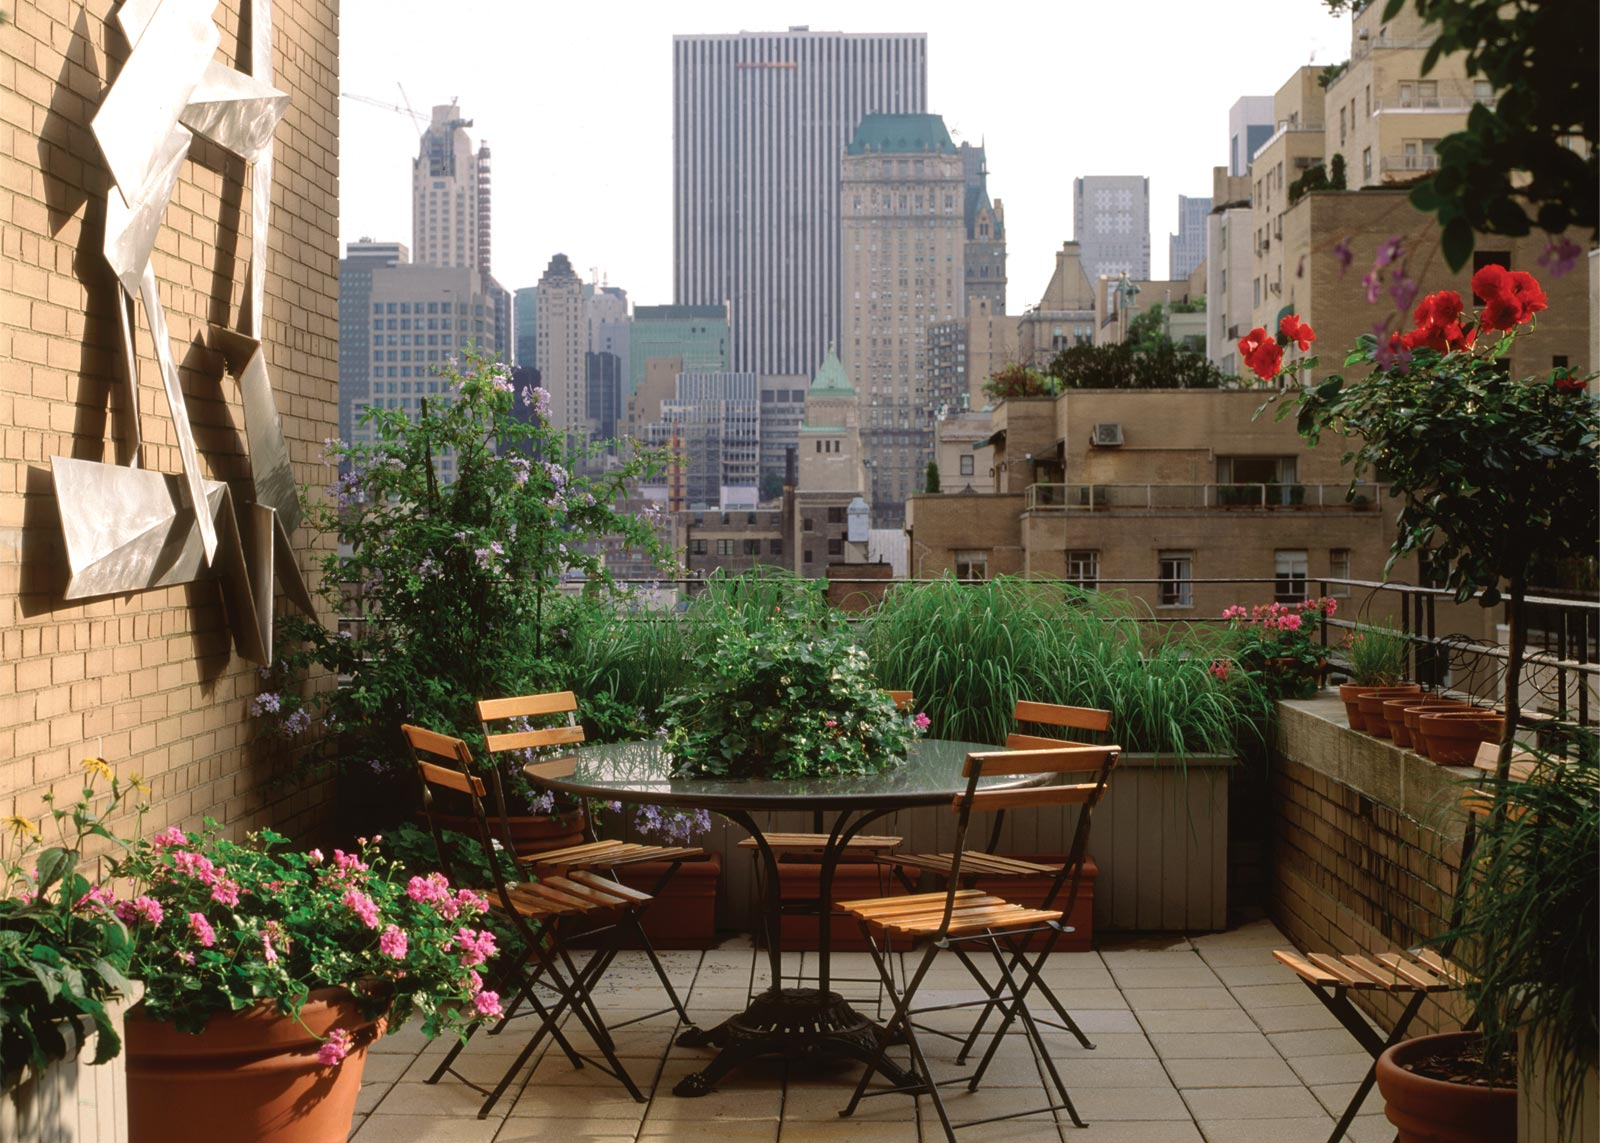 How to value outdoor space in New York City real estate